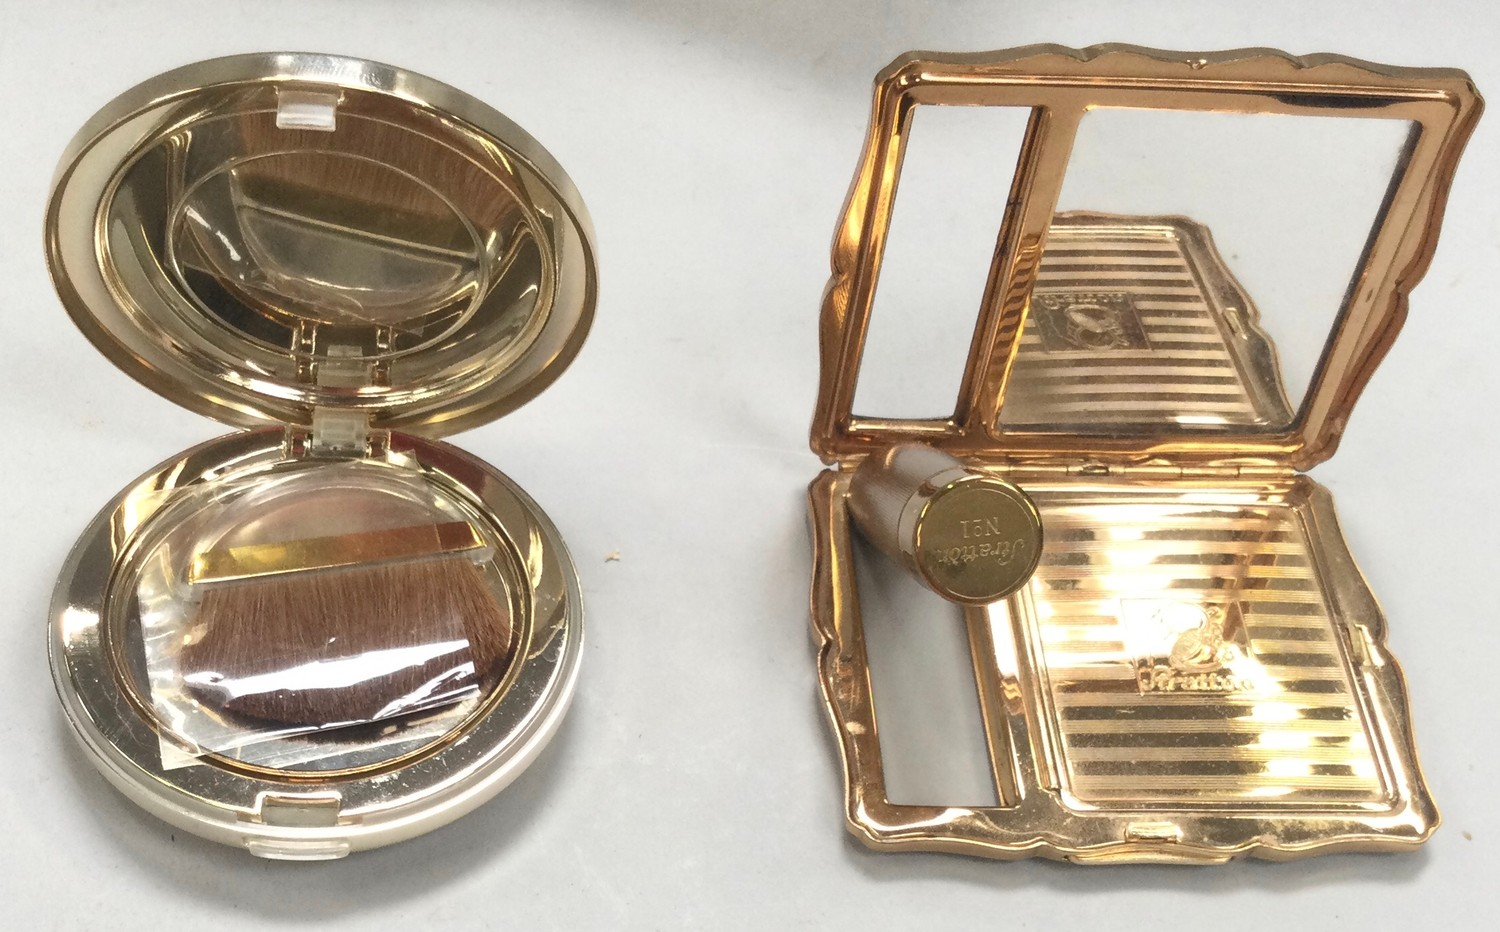 Stratton ladies compact with lipstick boxed with pouch together with Versace Glam Touch boxed - Image 2 of 2